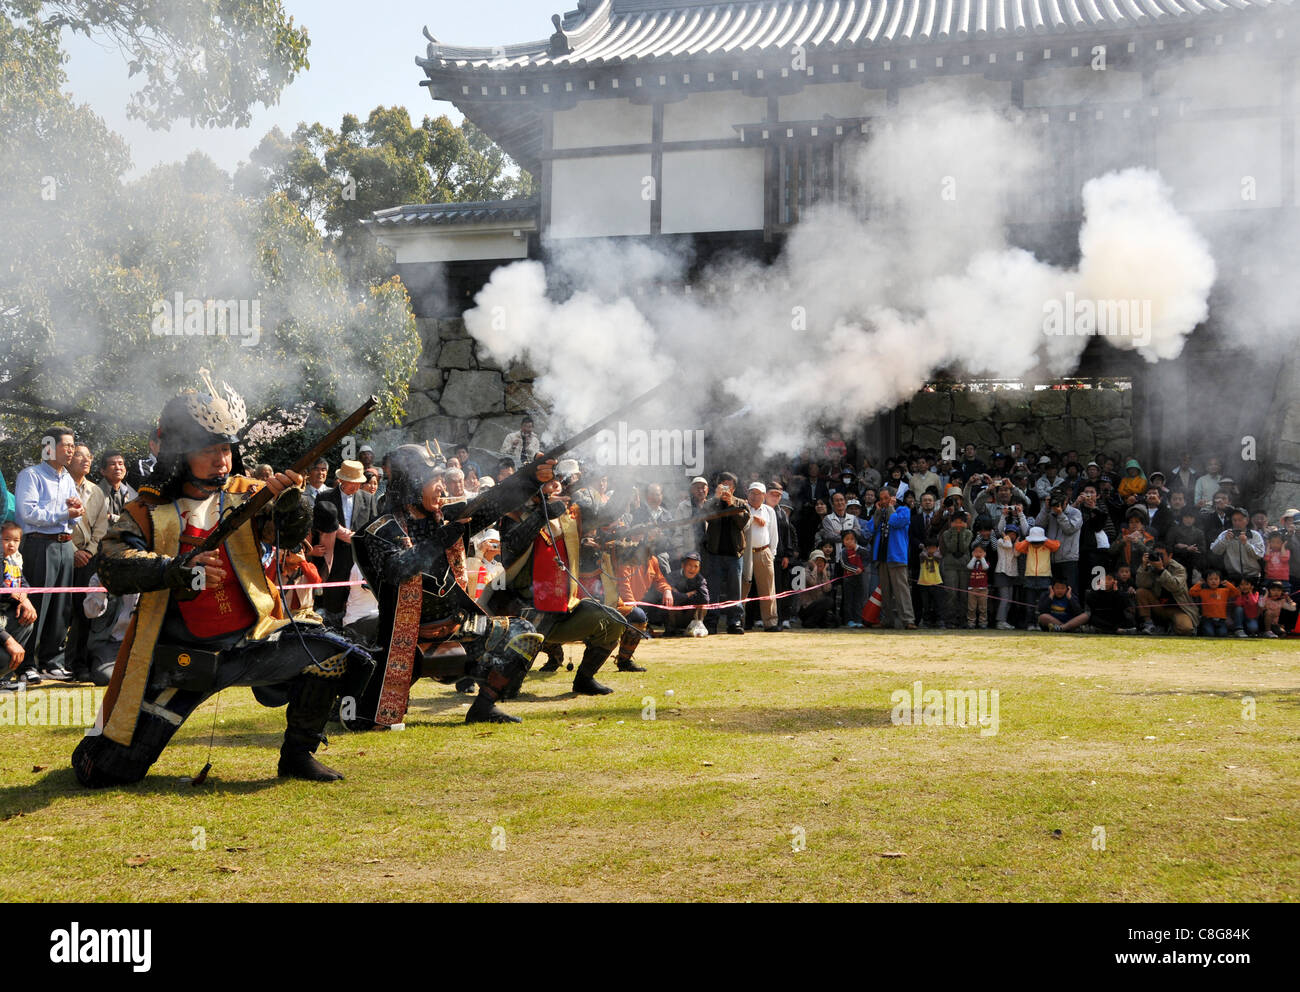 Festival reproducing how to fight ancient times of Japan - Stock Image